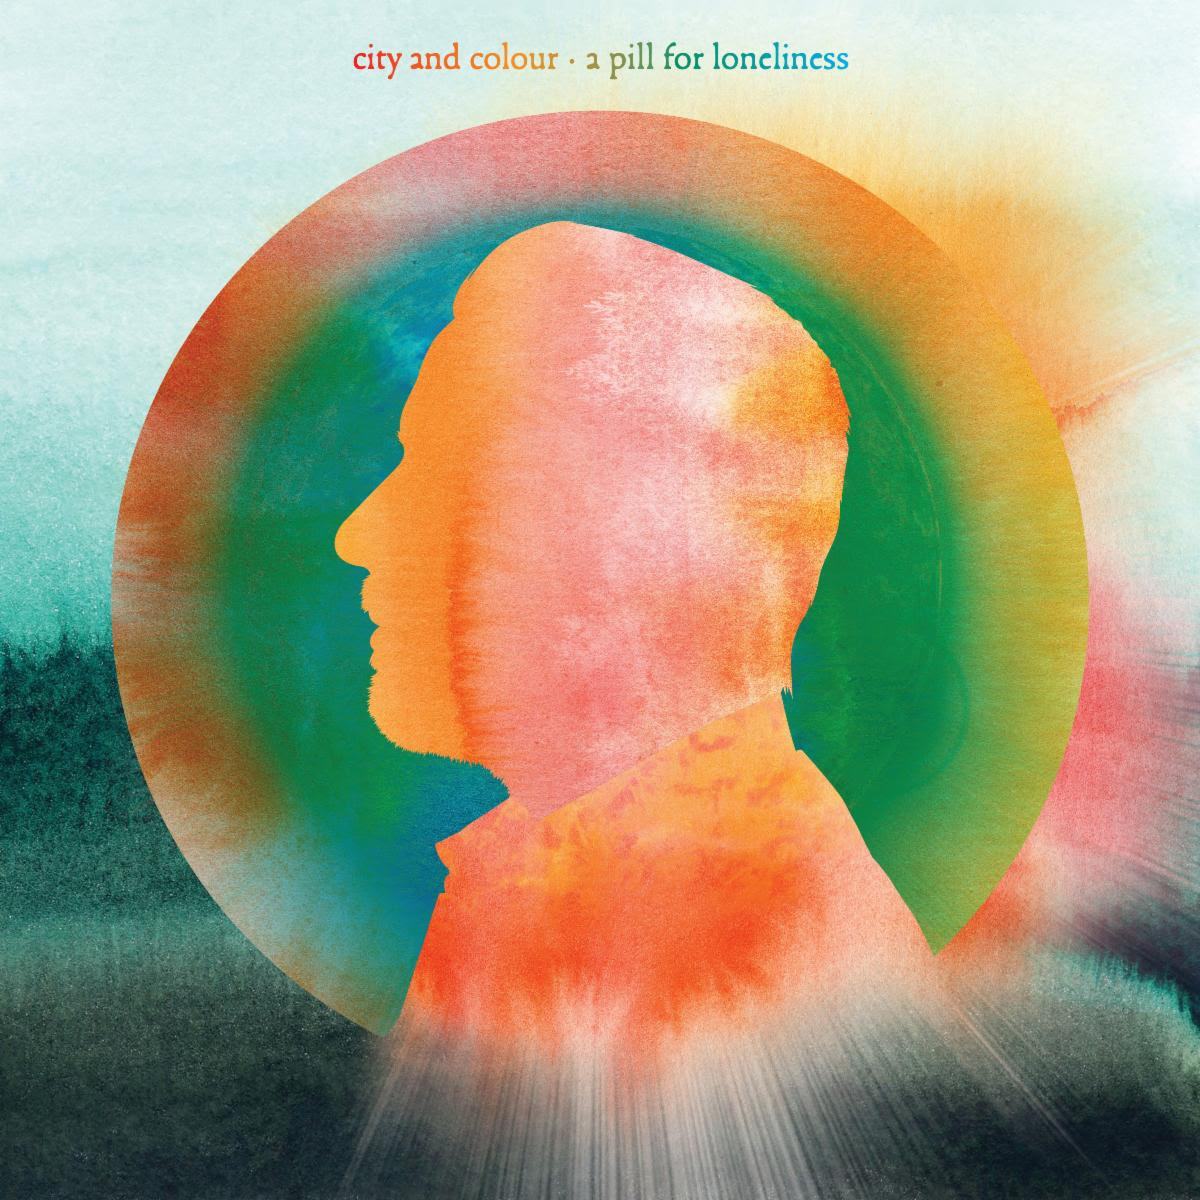 City and Colour announces new album 'A Pill For